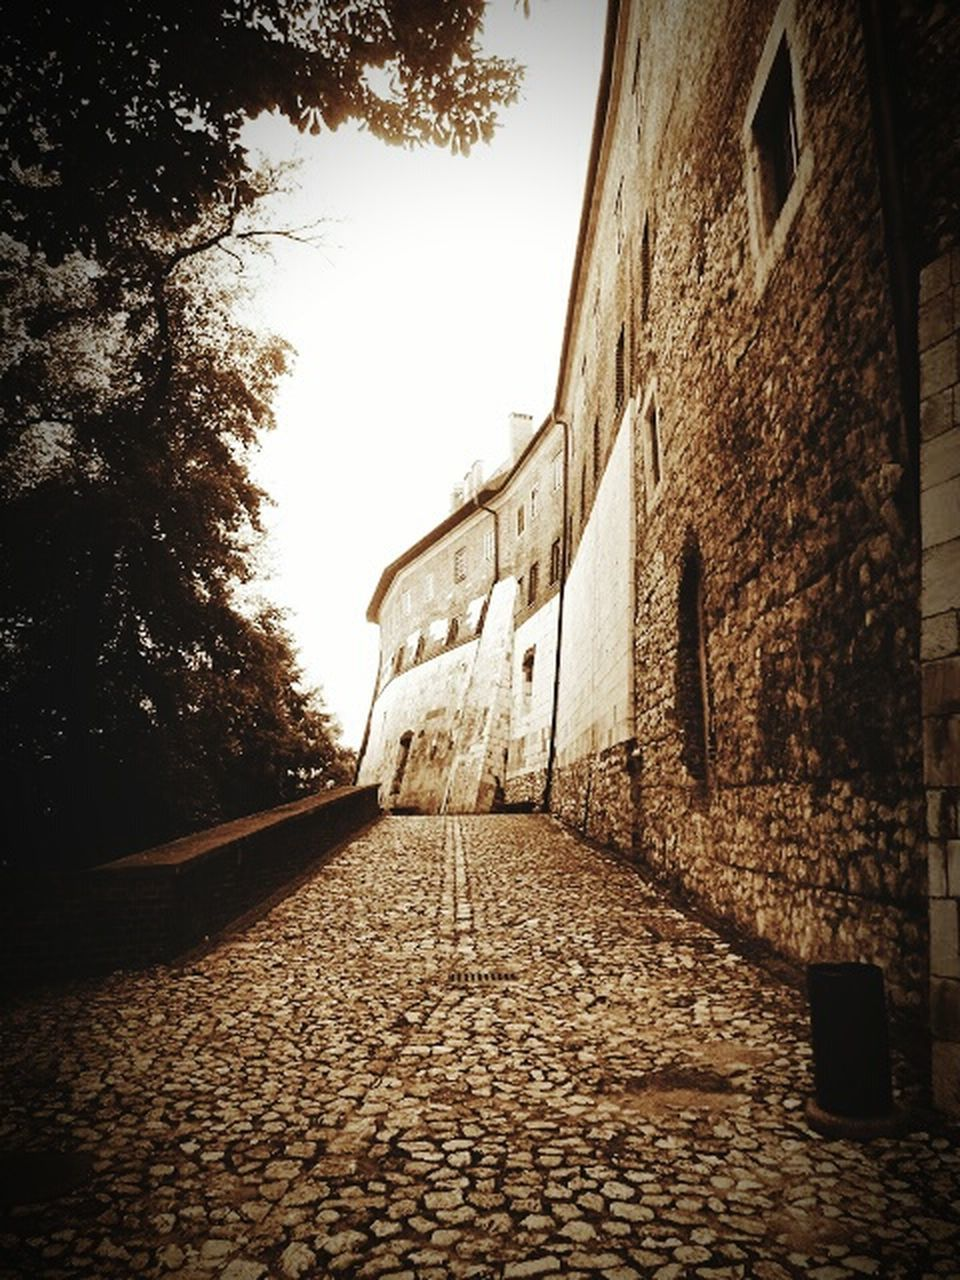 built structure, cobblestone, architecture, no people, building exterior, the way forward, day, history, outdoors, tree, sunlight, sky